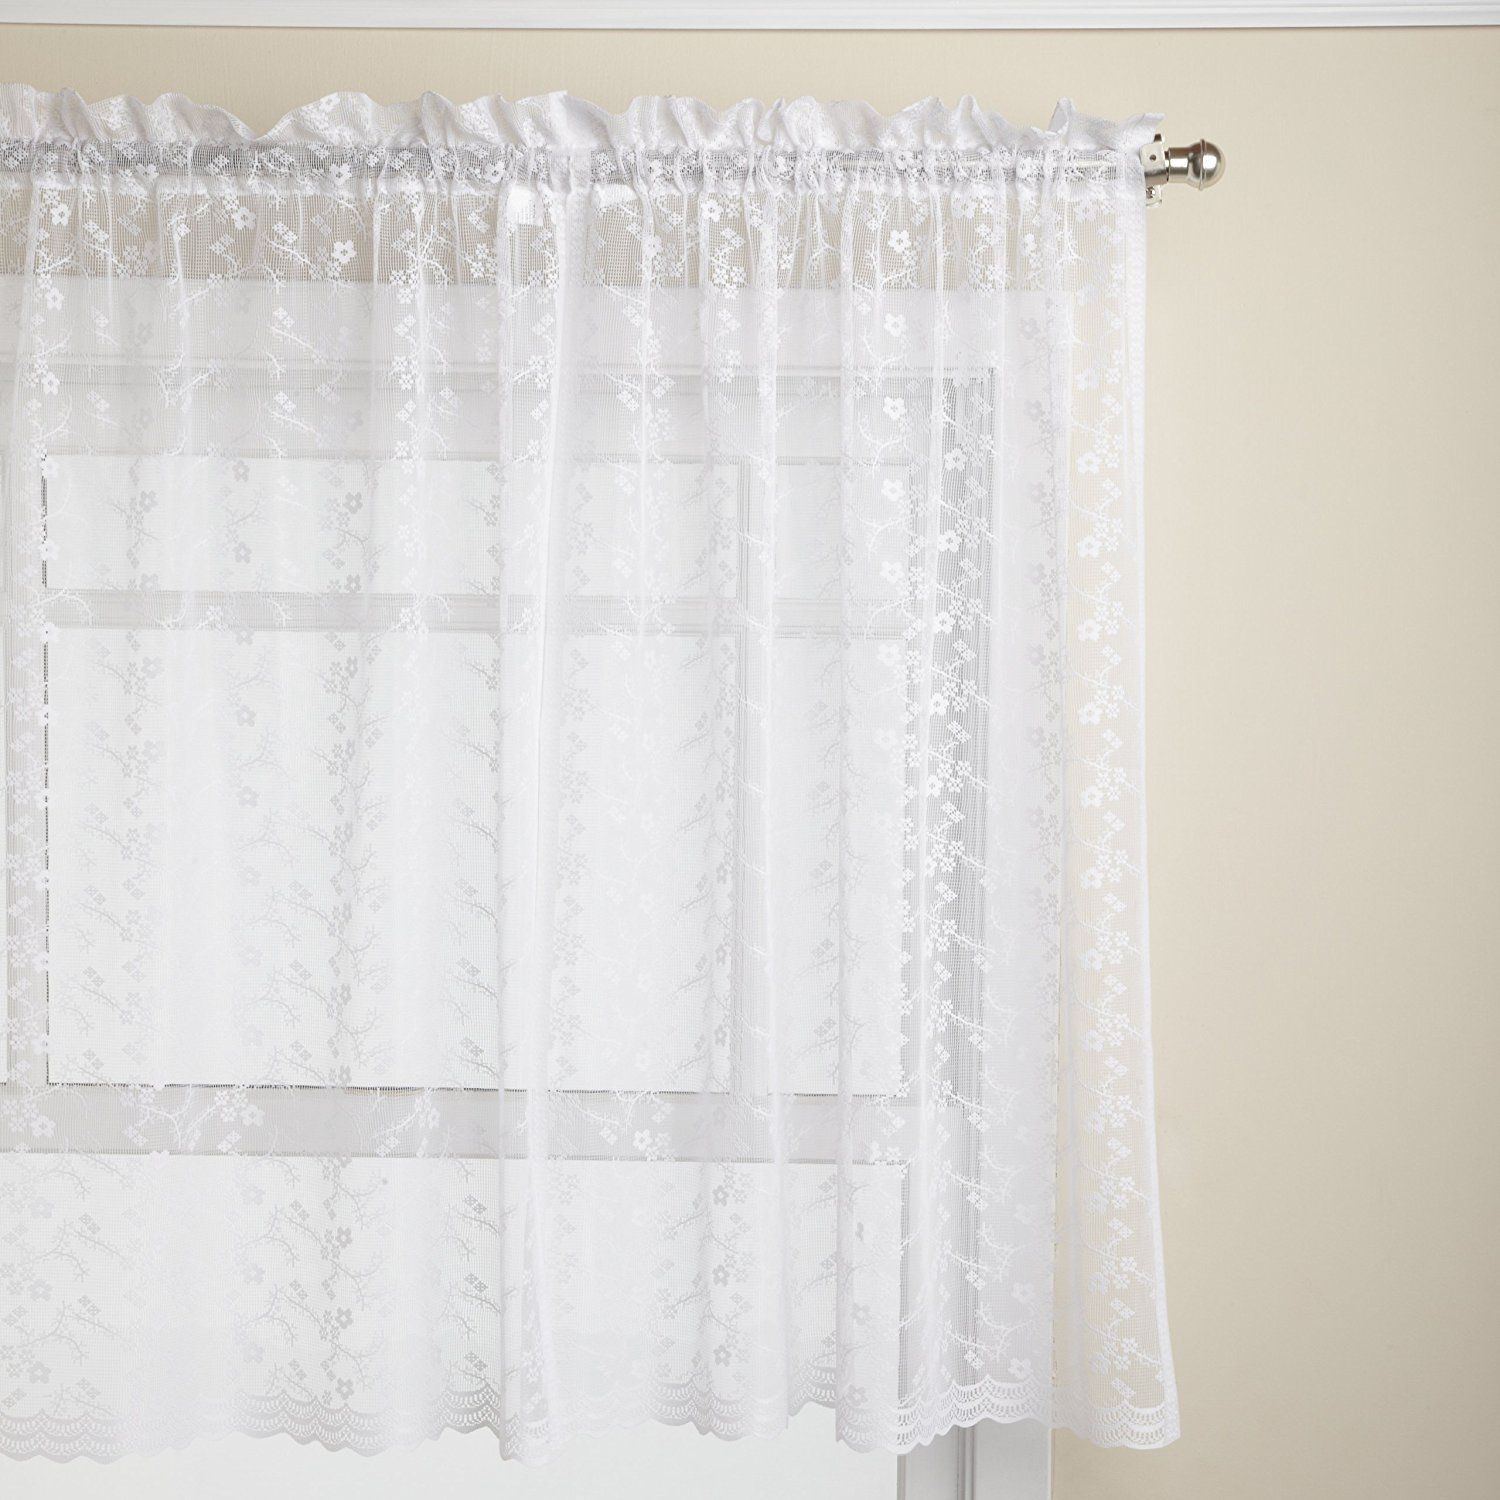 included dry flower blackout extra water resistant shirred blue adult heading only traditional plastic green clear liner teens contemporary hardware modern inches rod inc curtains long clean wildlife required rayon grommet sheer curtain white accessories not wash max hand paisley